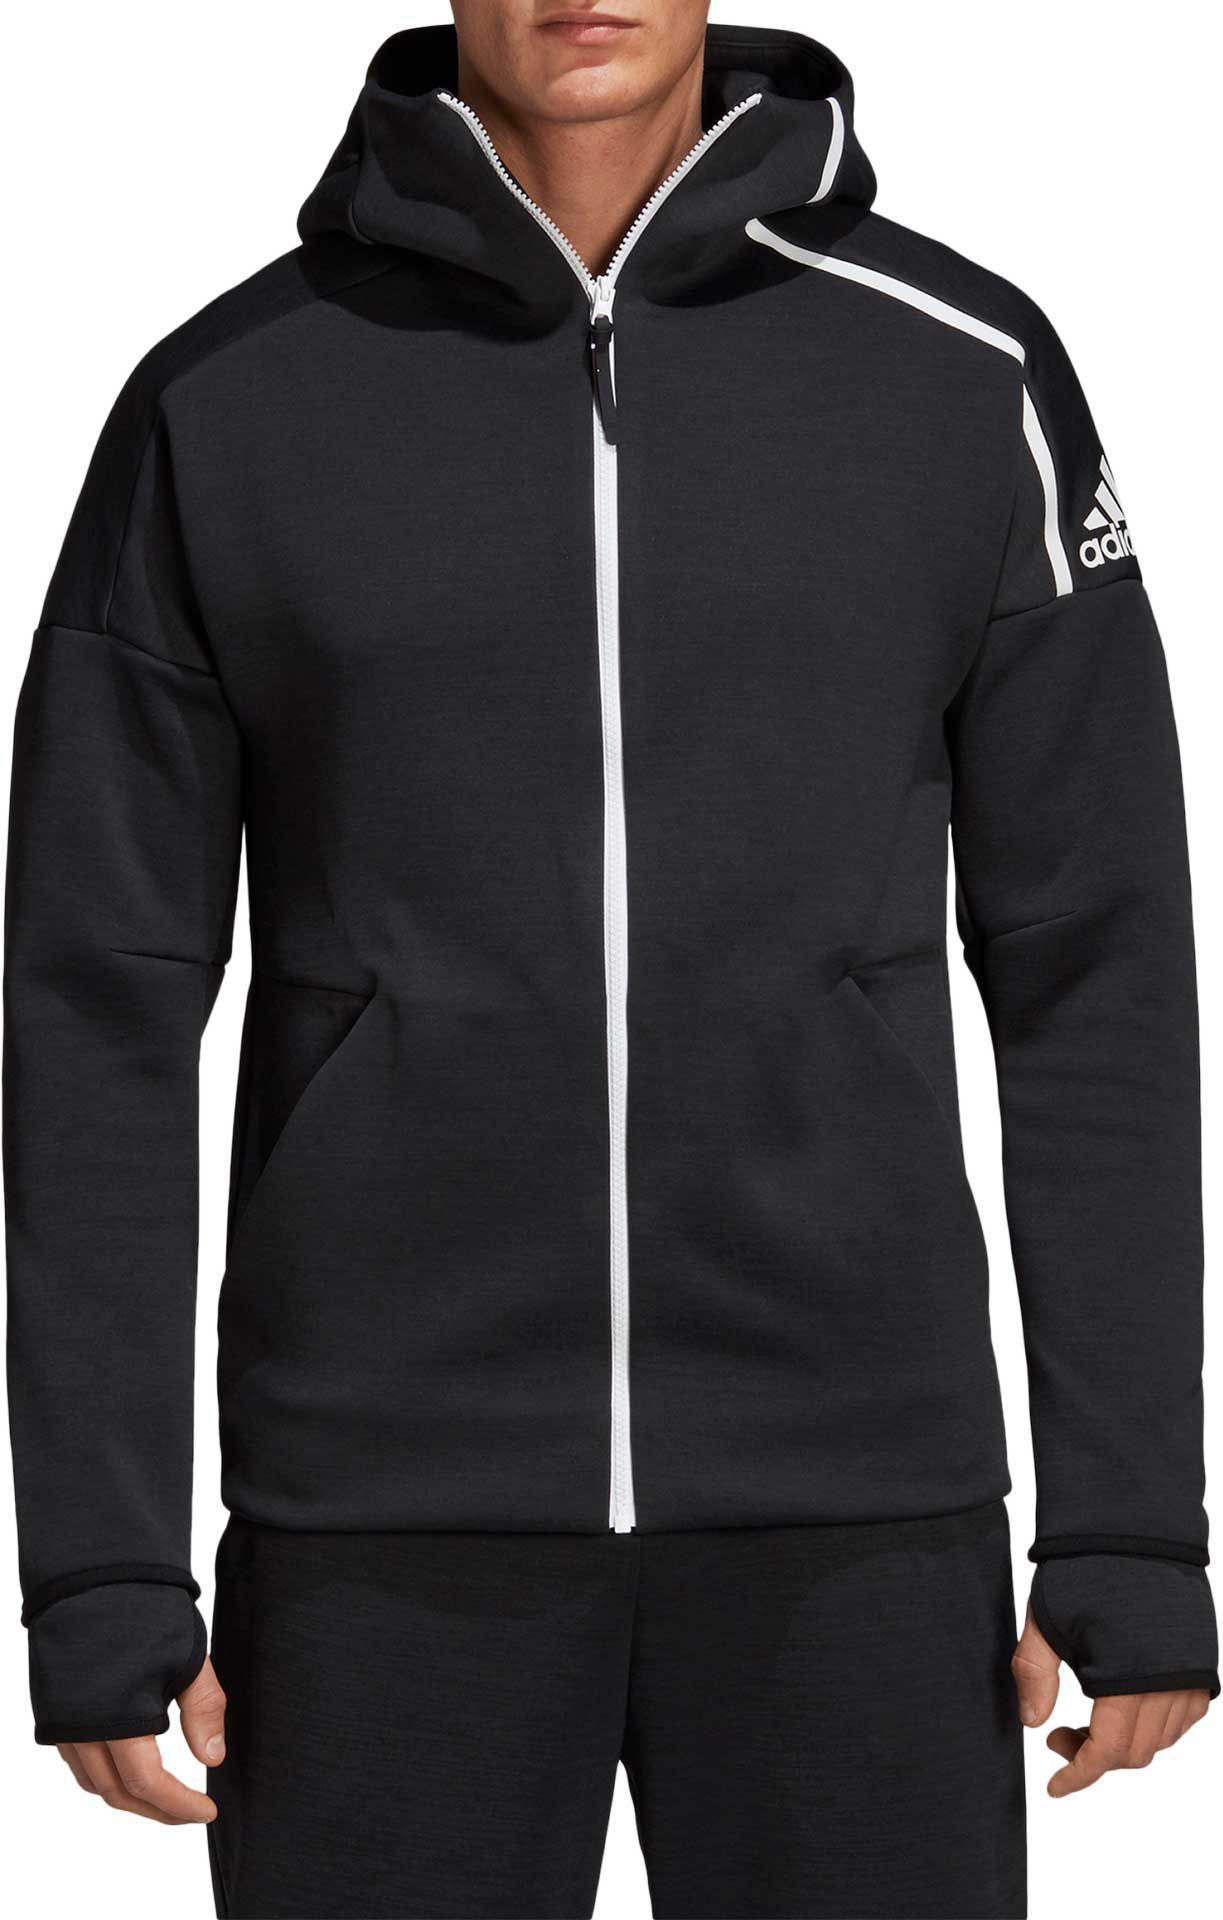 2019Products Adidas Up Men's Zne Zip Hoodie Full In shCtQrdx